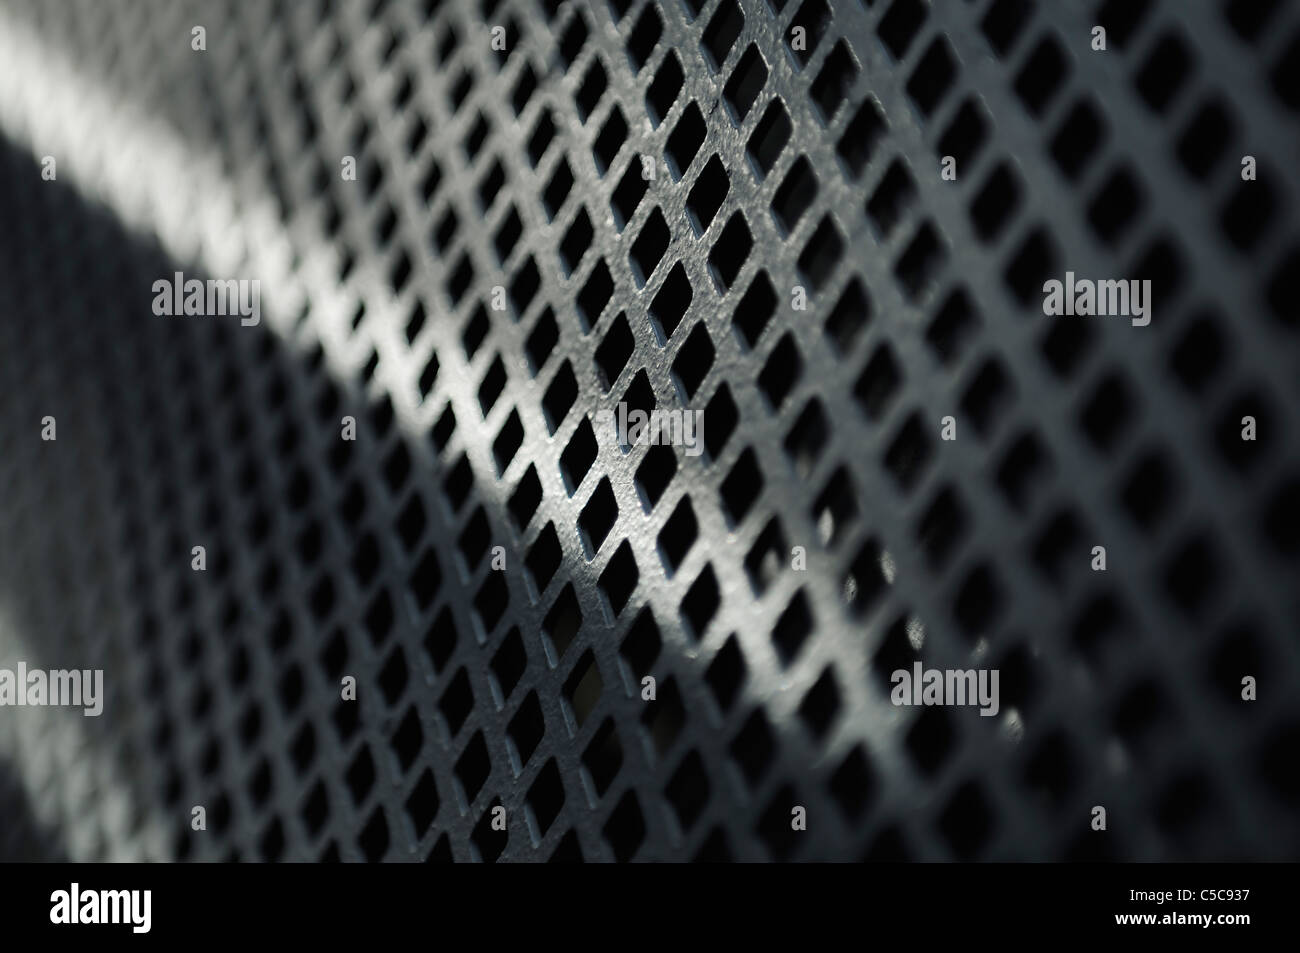 Old metal grid in perspective, short depth of field. - Stock Image